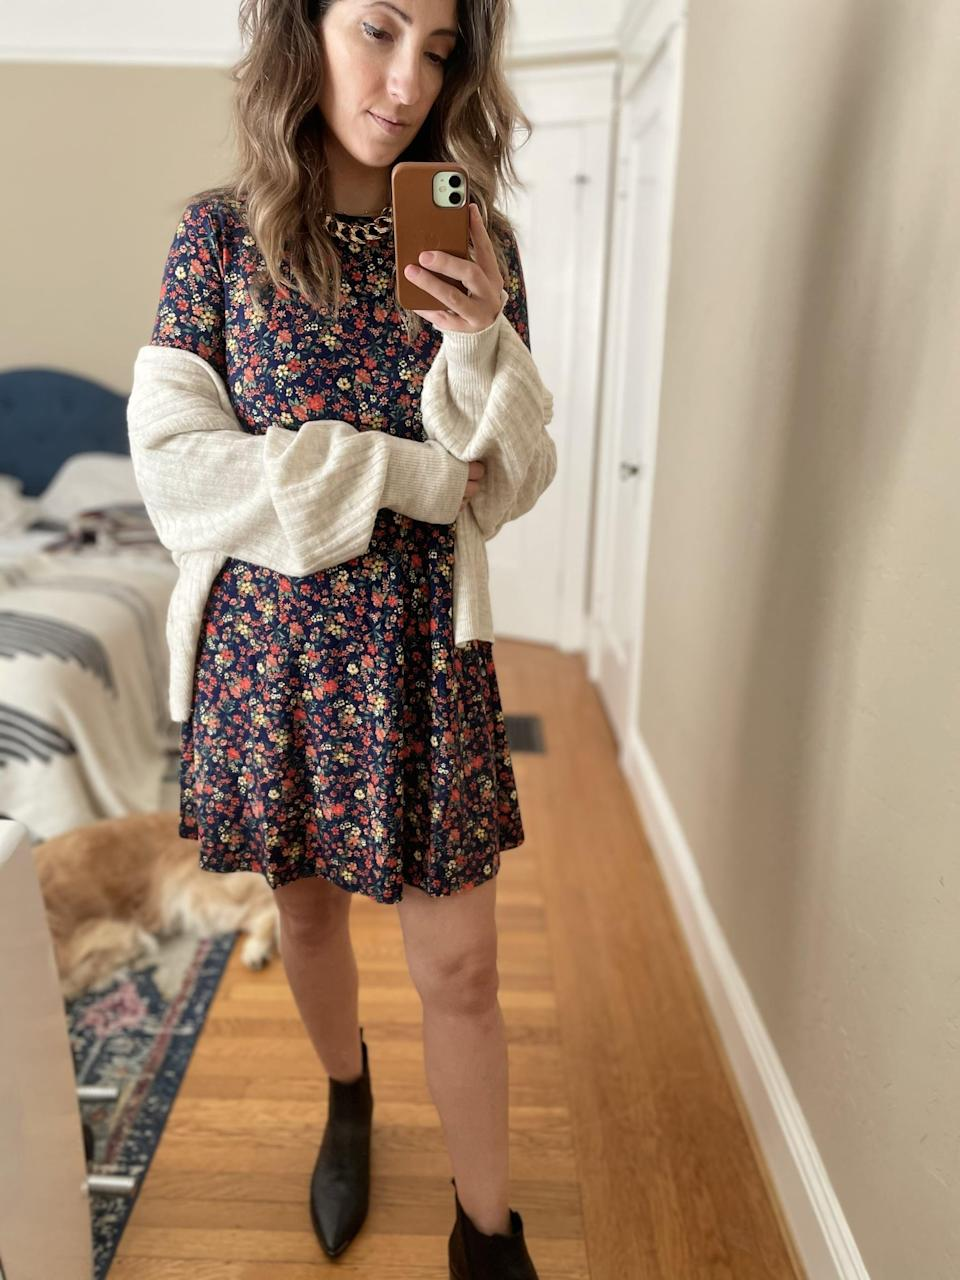 """<p><strong>The item:</strong> <span>Floral-Print Jersey-Knit Swing Dress</span> ($15, originally $30) </p> <p><strong>What our editor said:</strong> """"It's flowy and flattering, which makes it easy to toss on. It feels more like a long-sleeved shirt than anything, and it just moves so nicely. I wore it with a cream-colored cardigan sweater and black ankle boots, but to head outside I can easily toss on leggings to make it warmer."""" - RB</p> <p>If you want to read more, here is the <a href=""""https://www.popsugar.com/fashion/long-sleeve-floral-dress-at-old-navy-editor-review-48056334:"""" class=""""link rapid-noclick-resp"""" rel=""""nofollow noopener"""" target=""""_blank"""" data-ylk=""""slk:complete review"""">complete review</a>.</p>"""